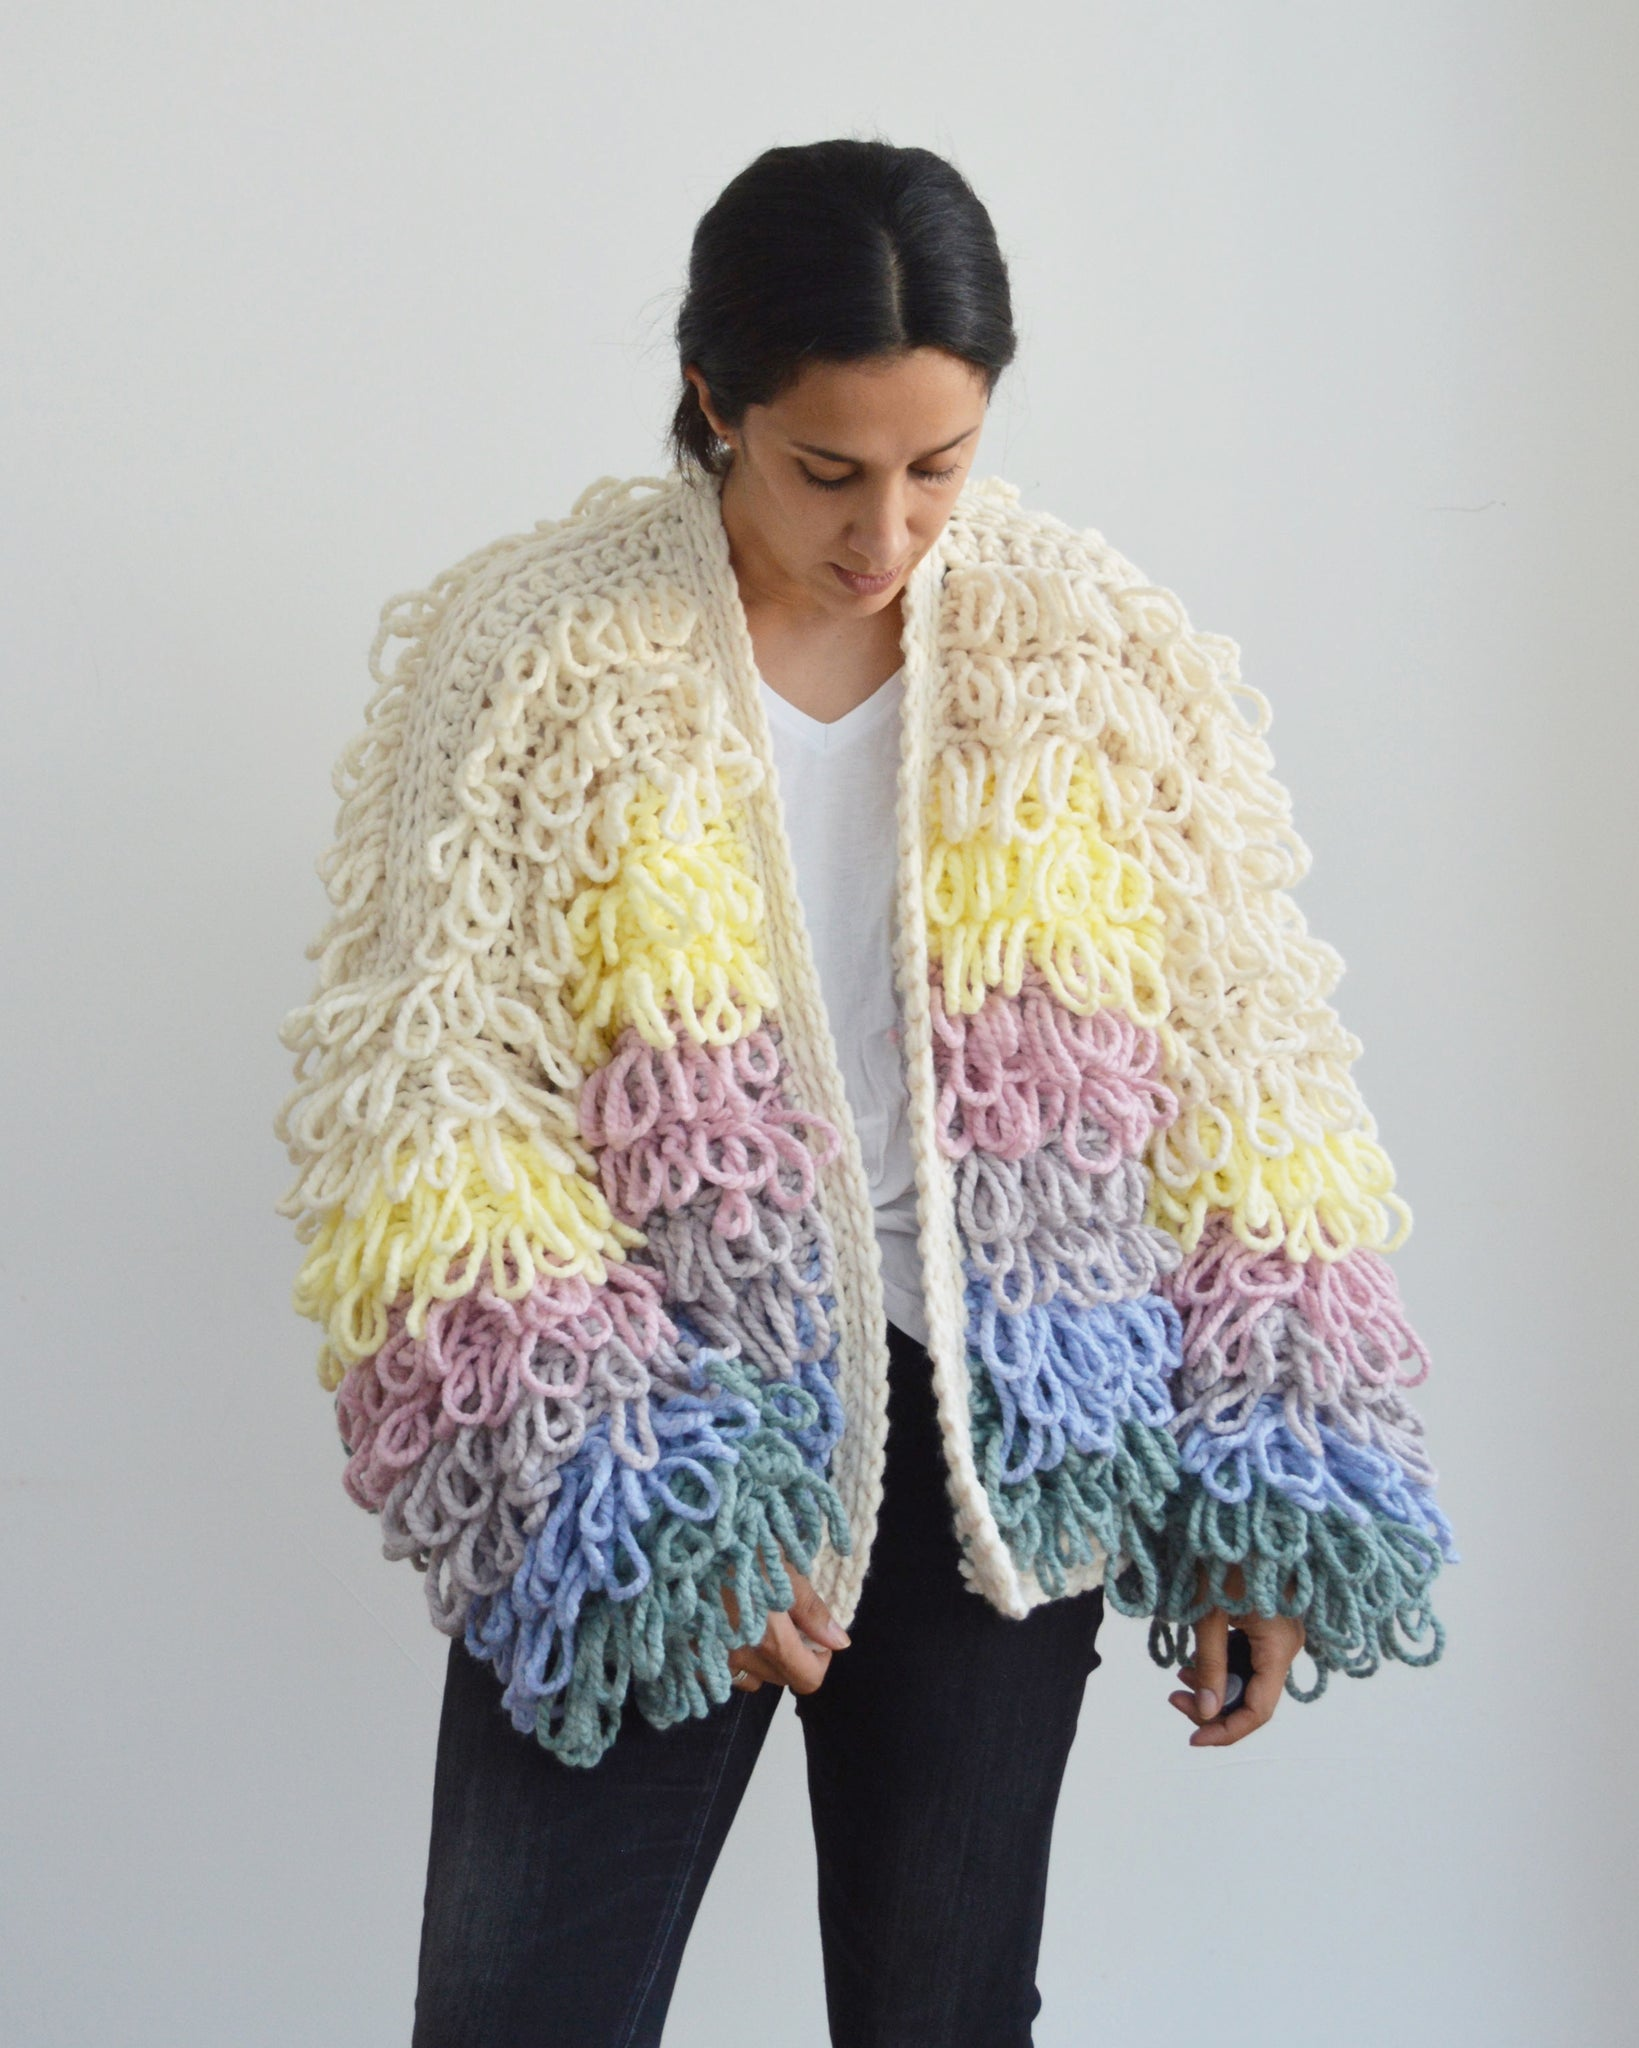 Woman looking down wearing loopy pastel crochet cardigan against light background